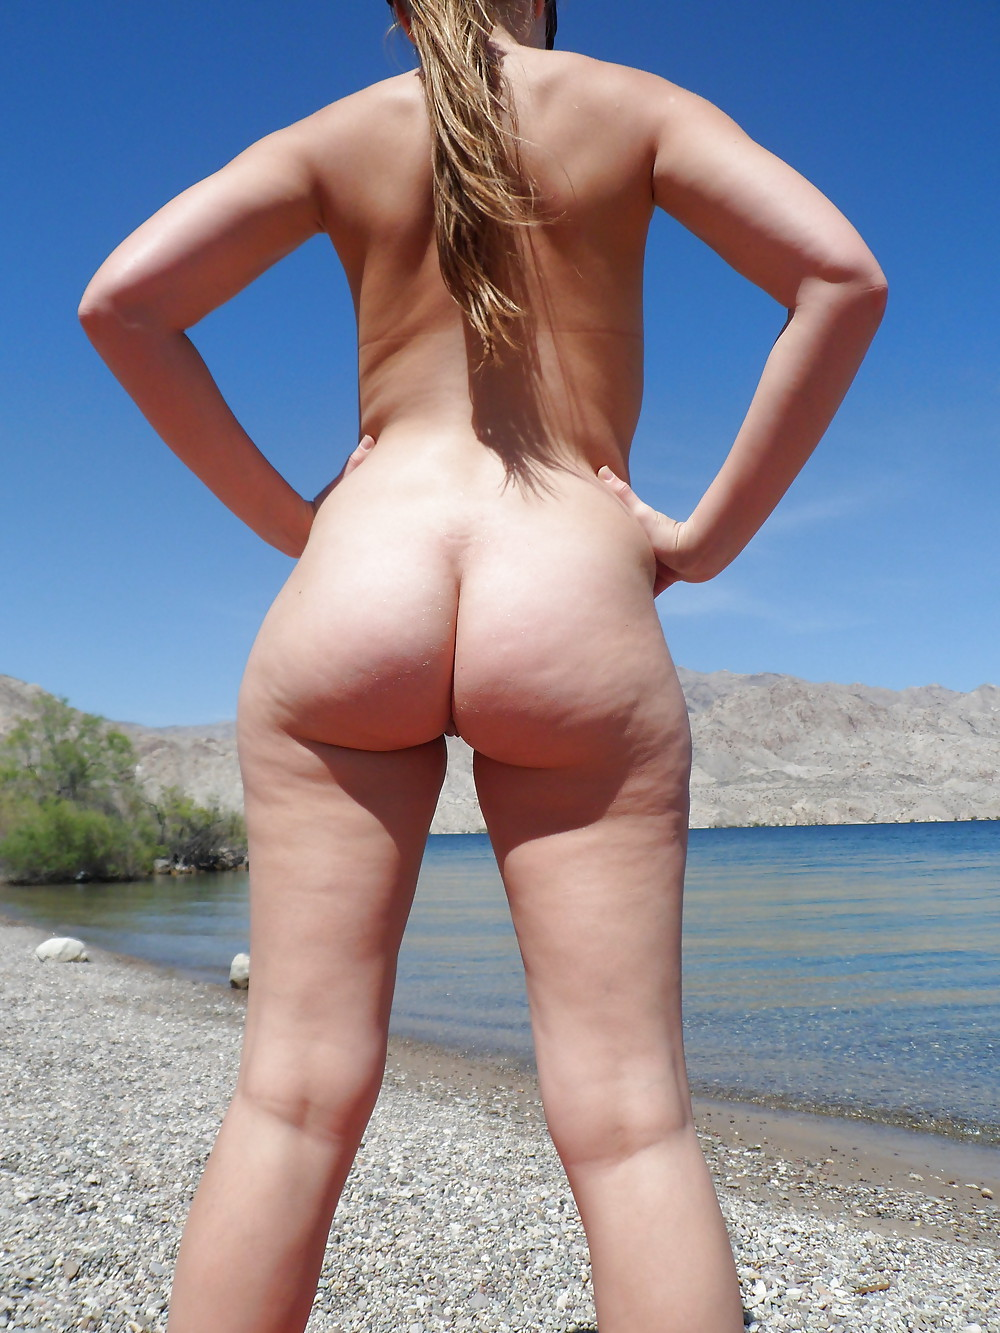 Big butts nudety asian mude